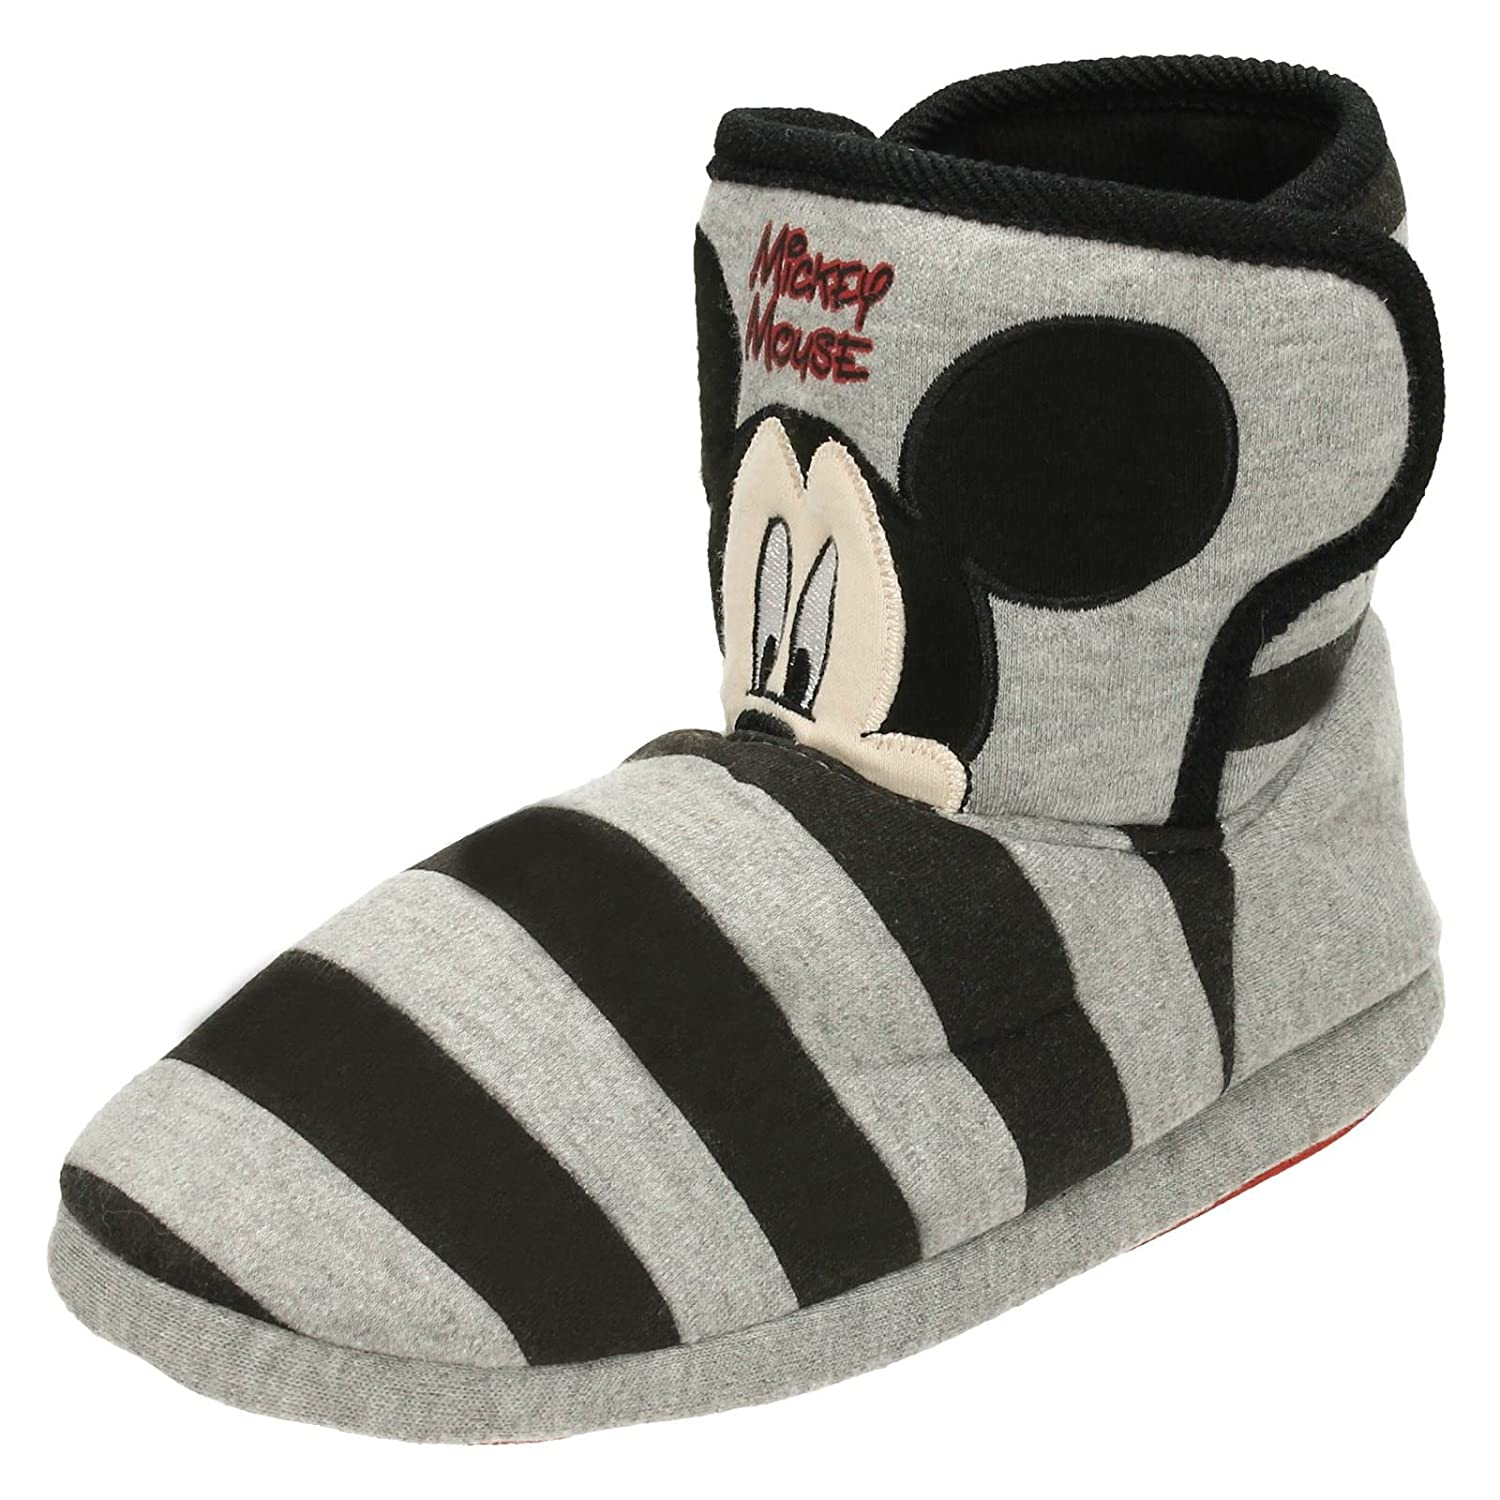 Childrens Disney Slippers - Mickey Mouse